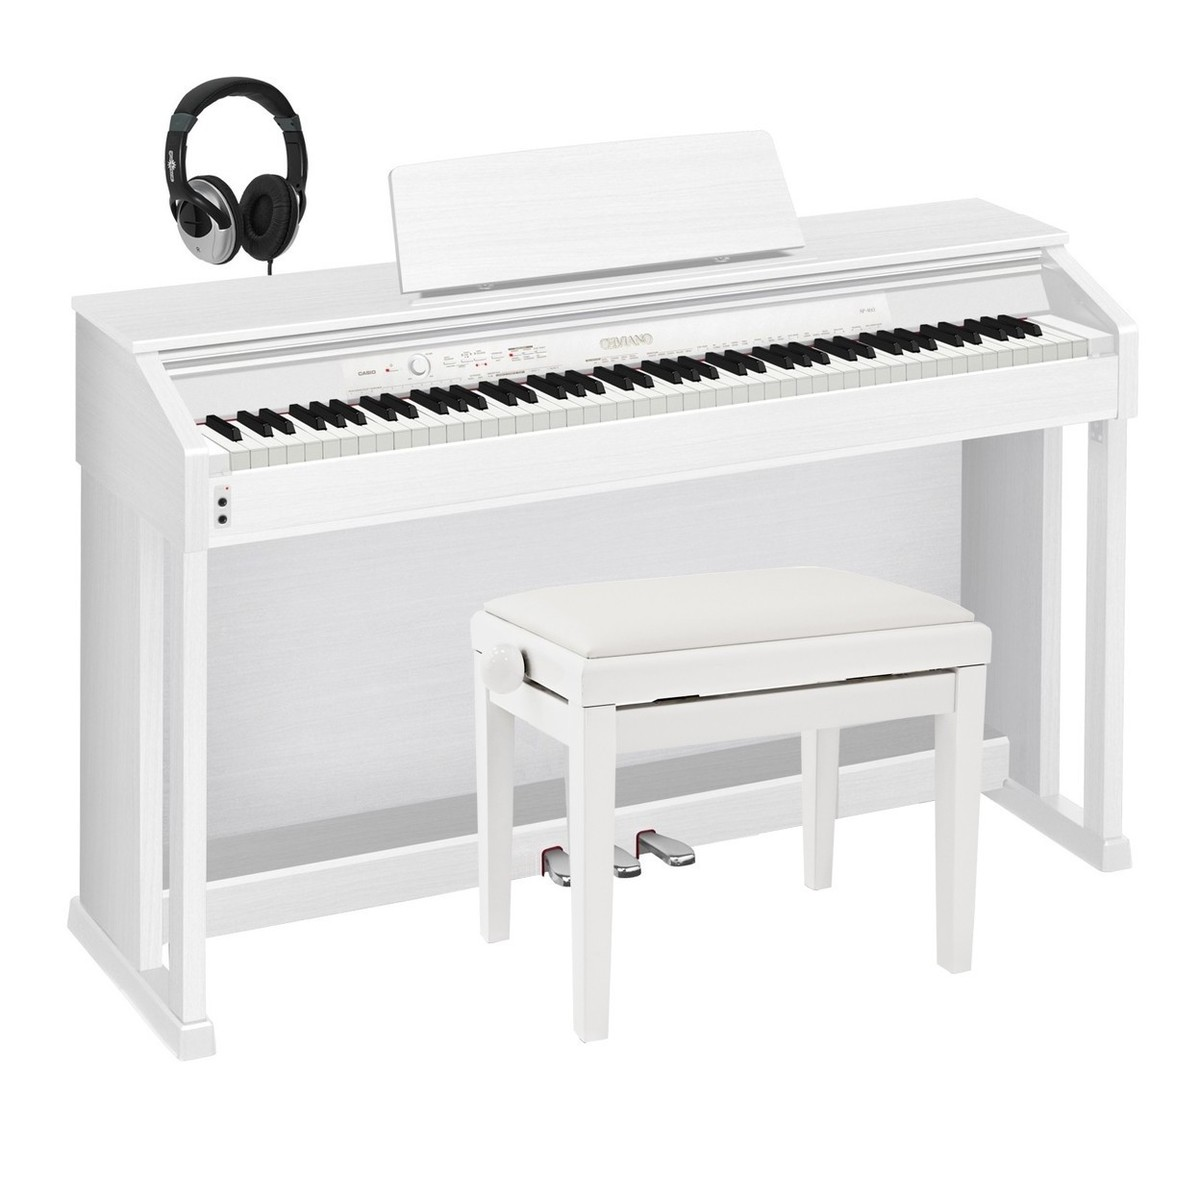 casio celviano ap 460 digital piano white with stool and headphones at gear4music. Black Bedroom Furniture Sets. Home Design Ideas